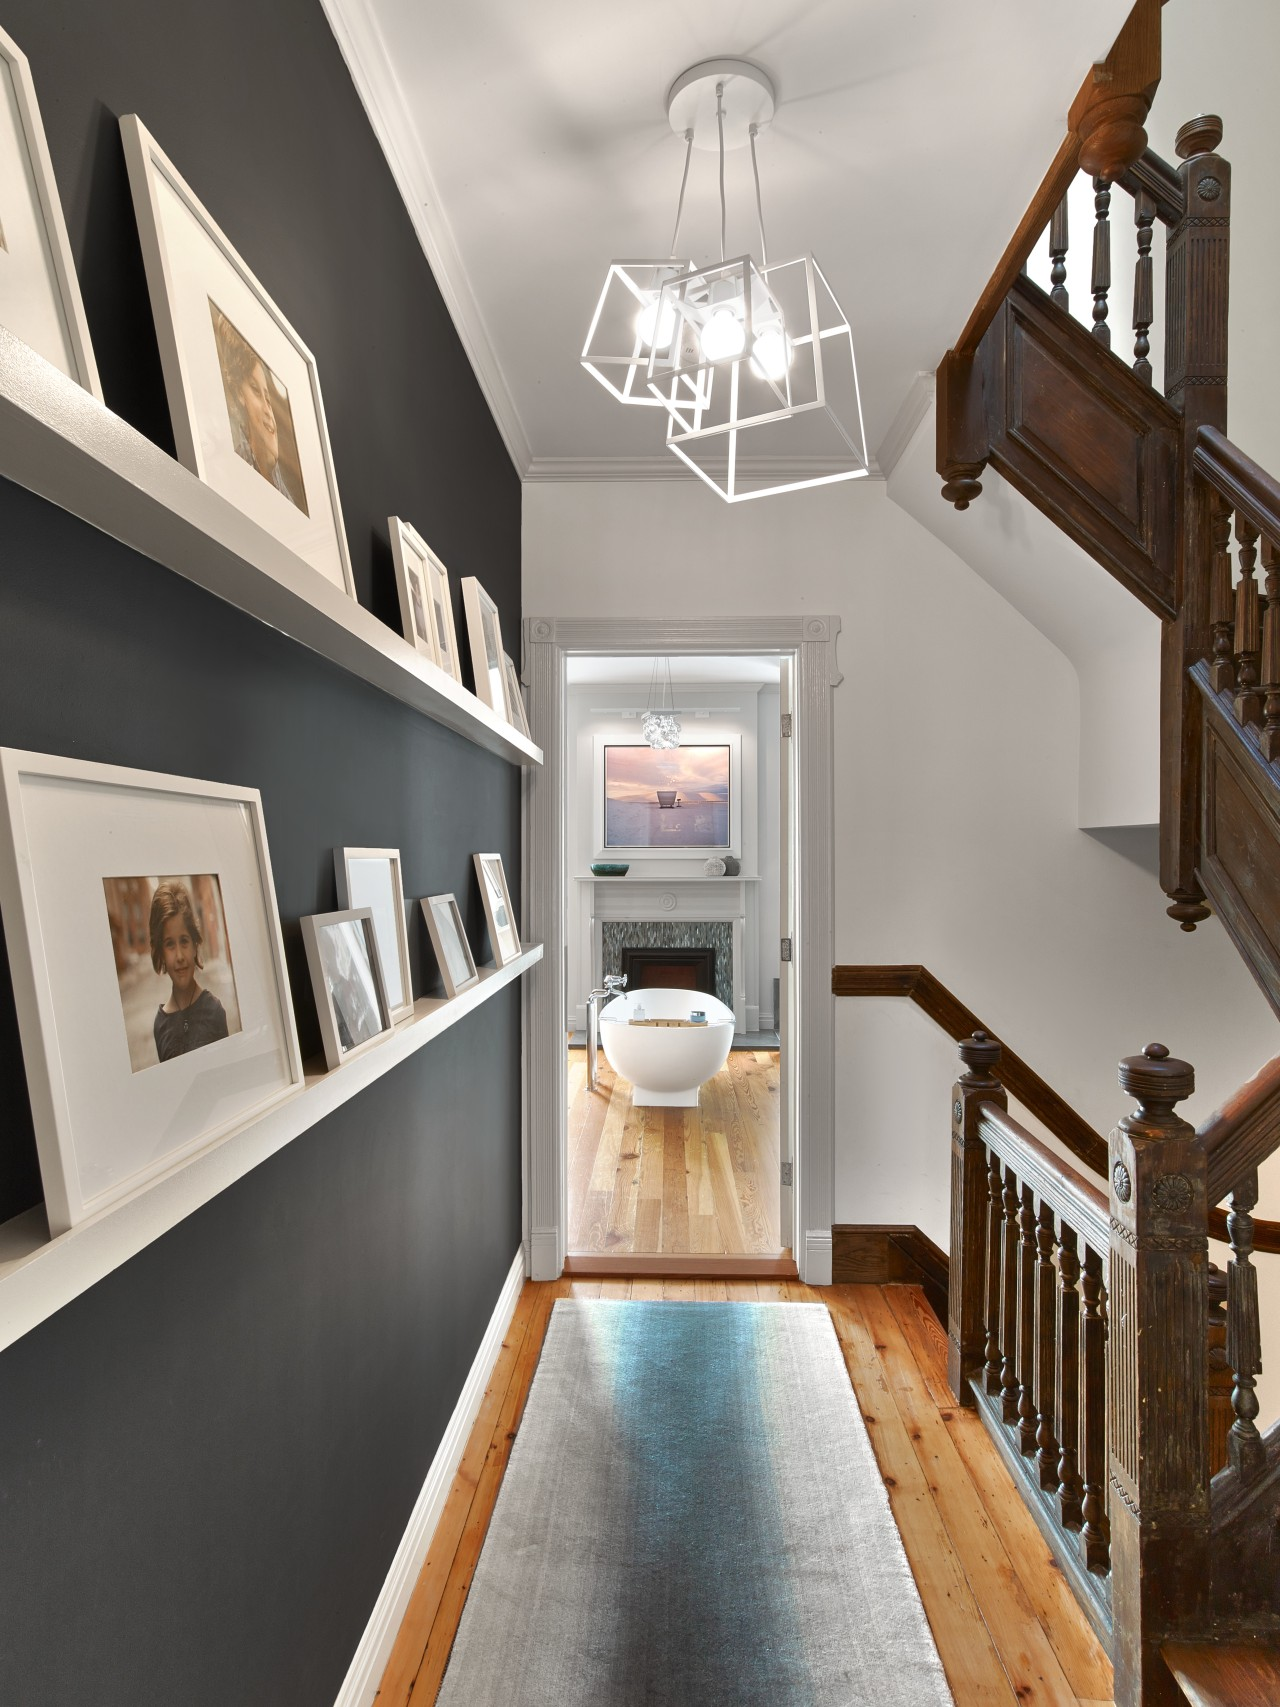 For this renovation, the connecting hallway between bedroom ceiling, home, interior design, living room, room, gray